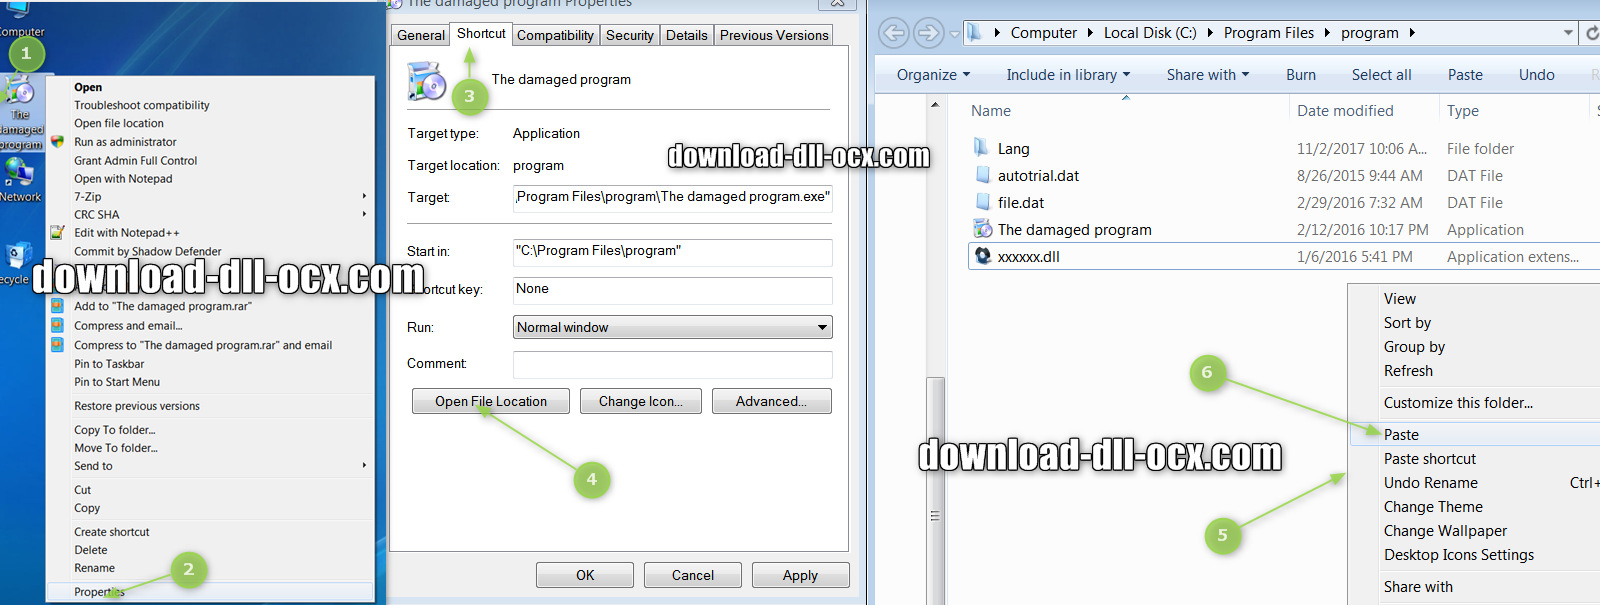 how to install AERTACap.dll file? for fix missing